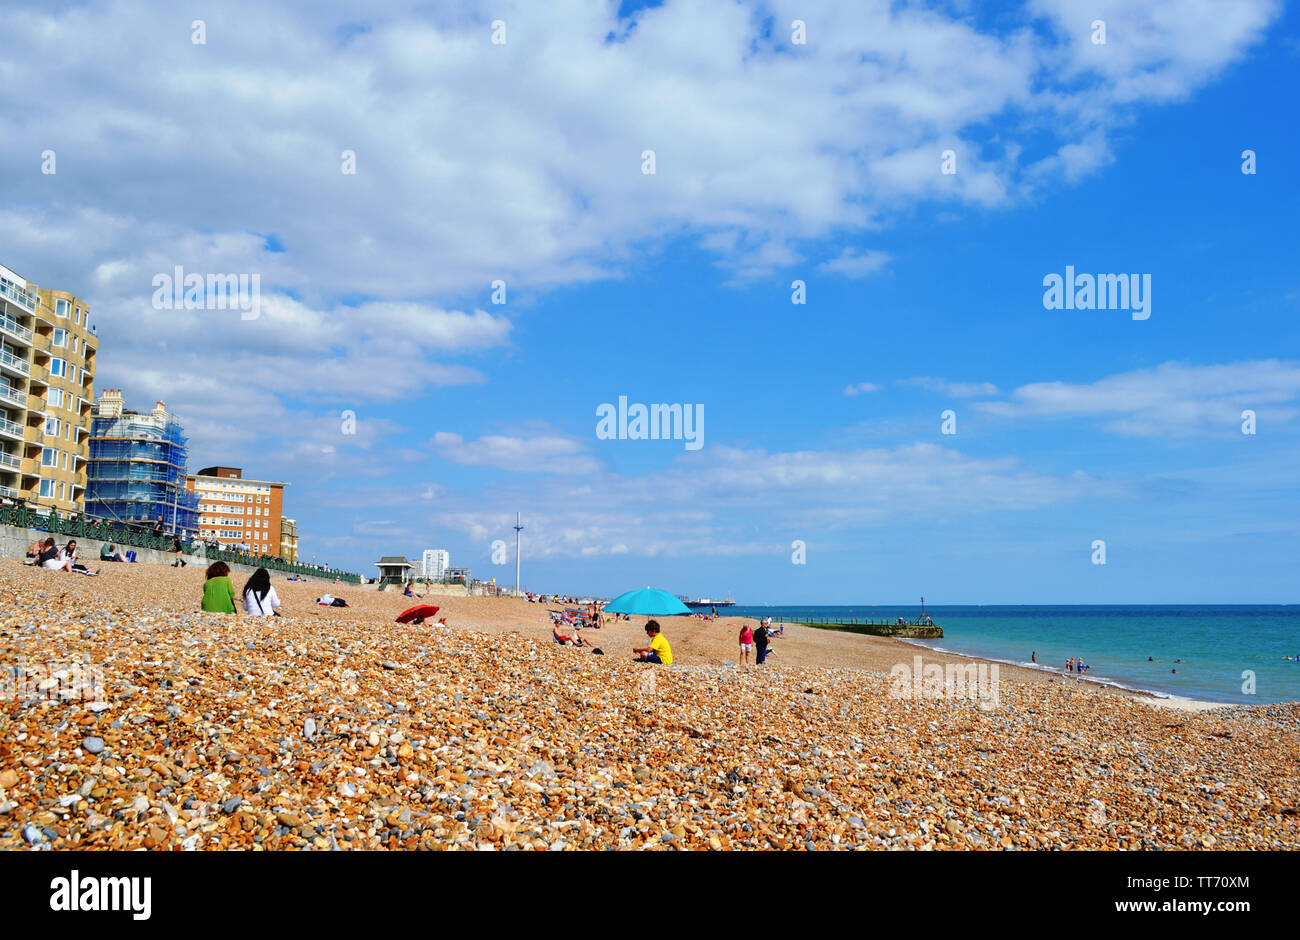 Brighton, UK - August 14, 2016: Beautiful panoramic view to pebble beach at the sea and the famous British Airways i360 observation tower at horizon. Stock Photo